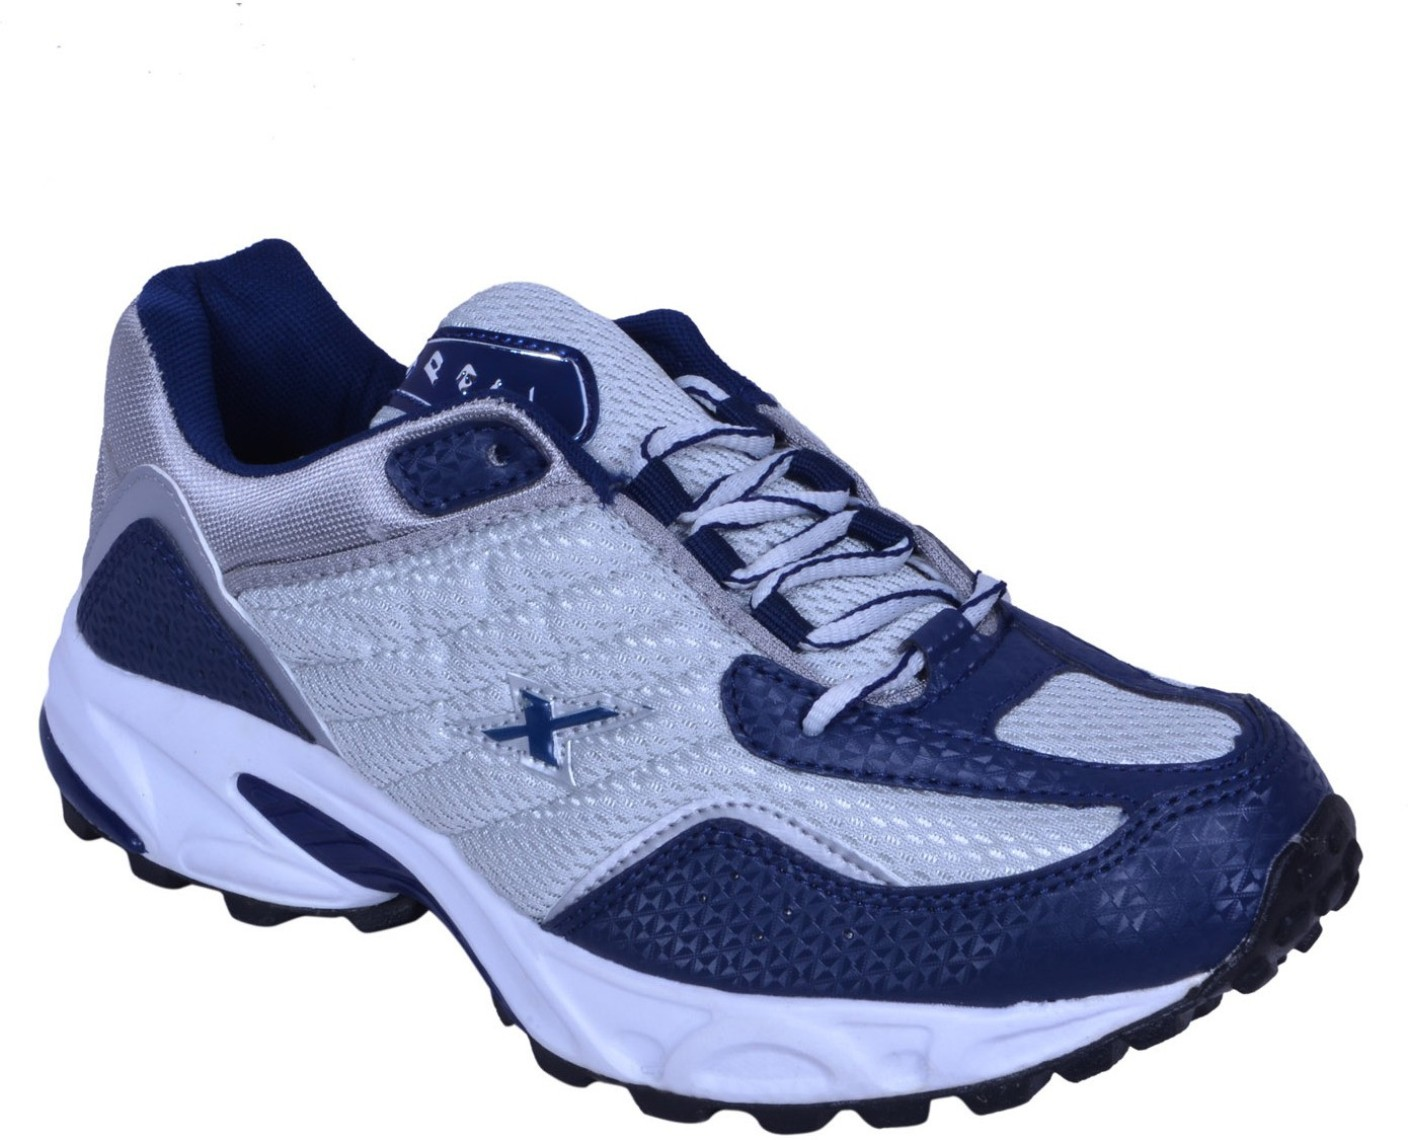 Buying Sports Shoes Online India